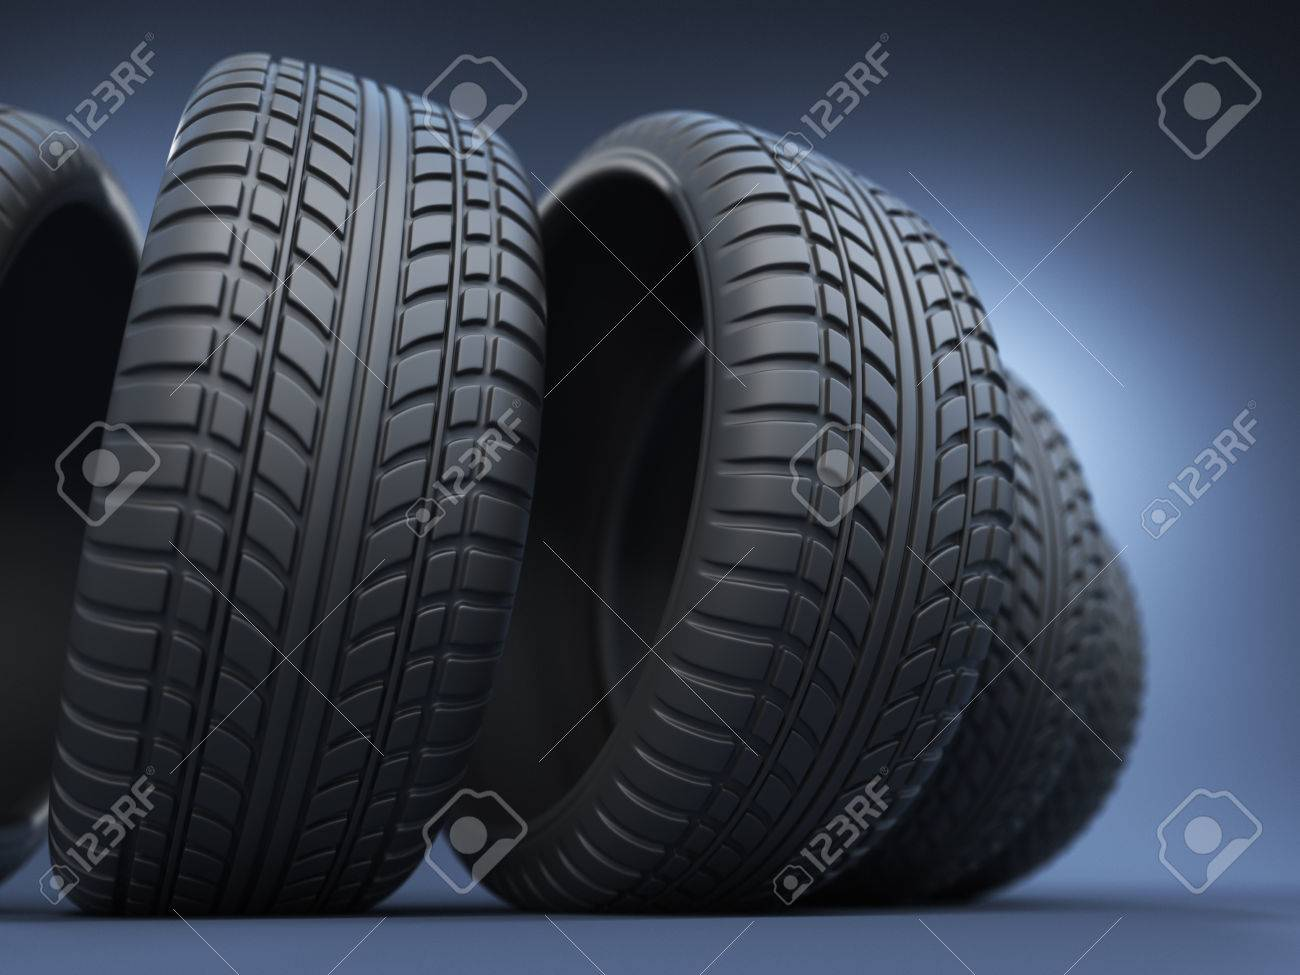 rubber tire or tyre 3D, on blue - 57515202